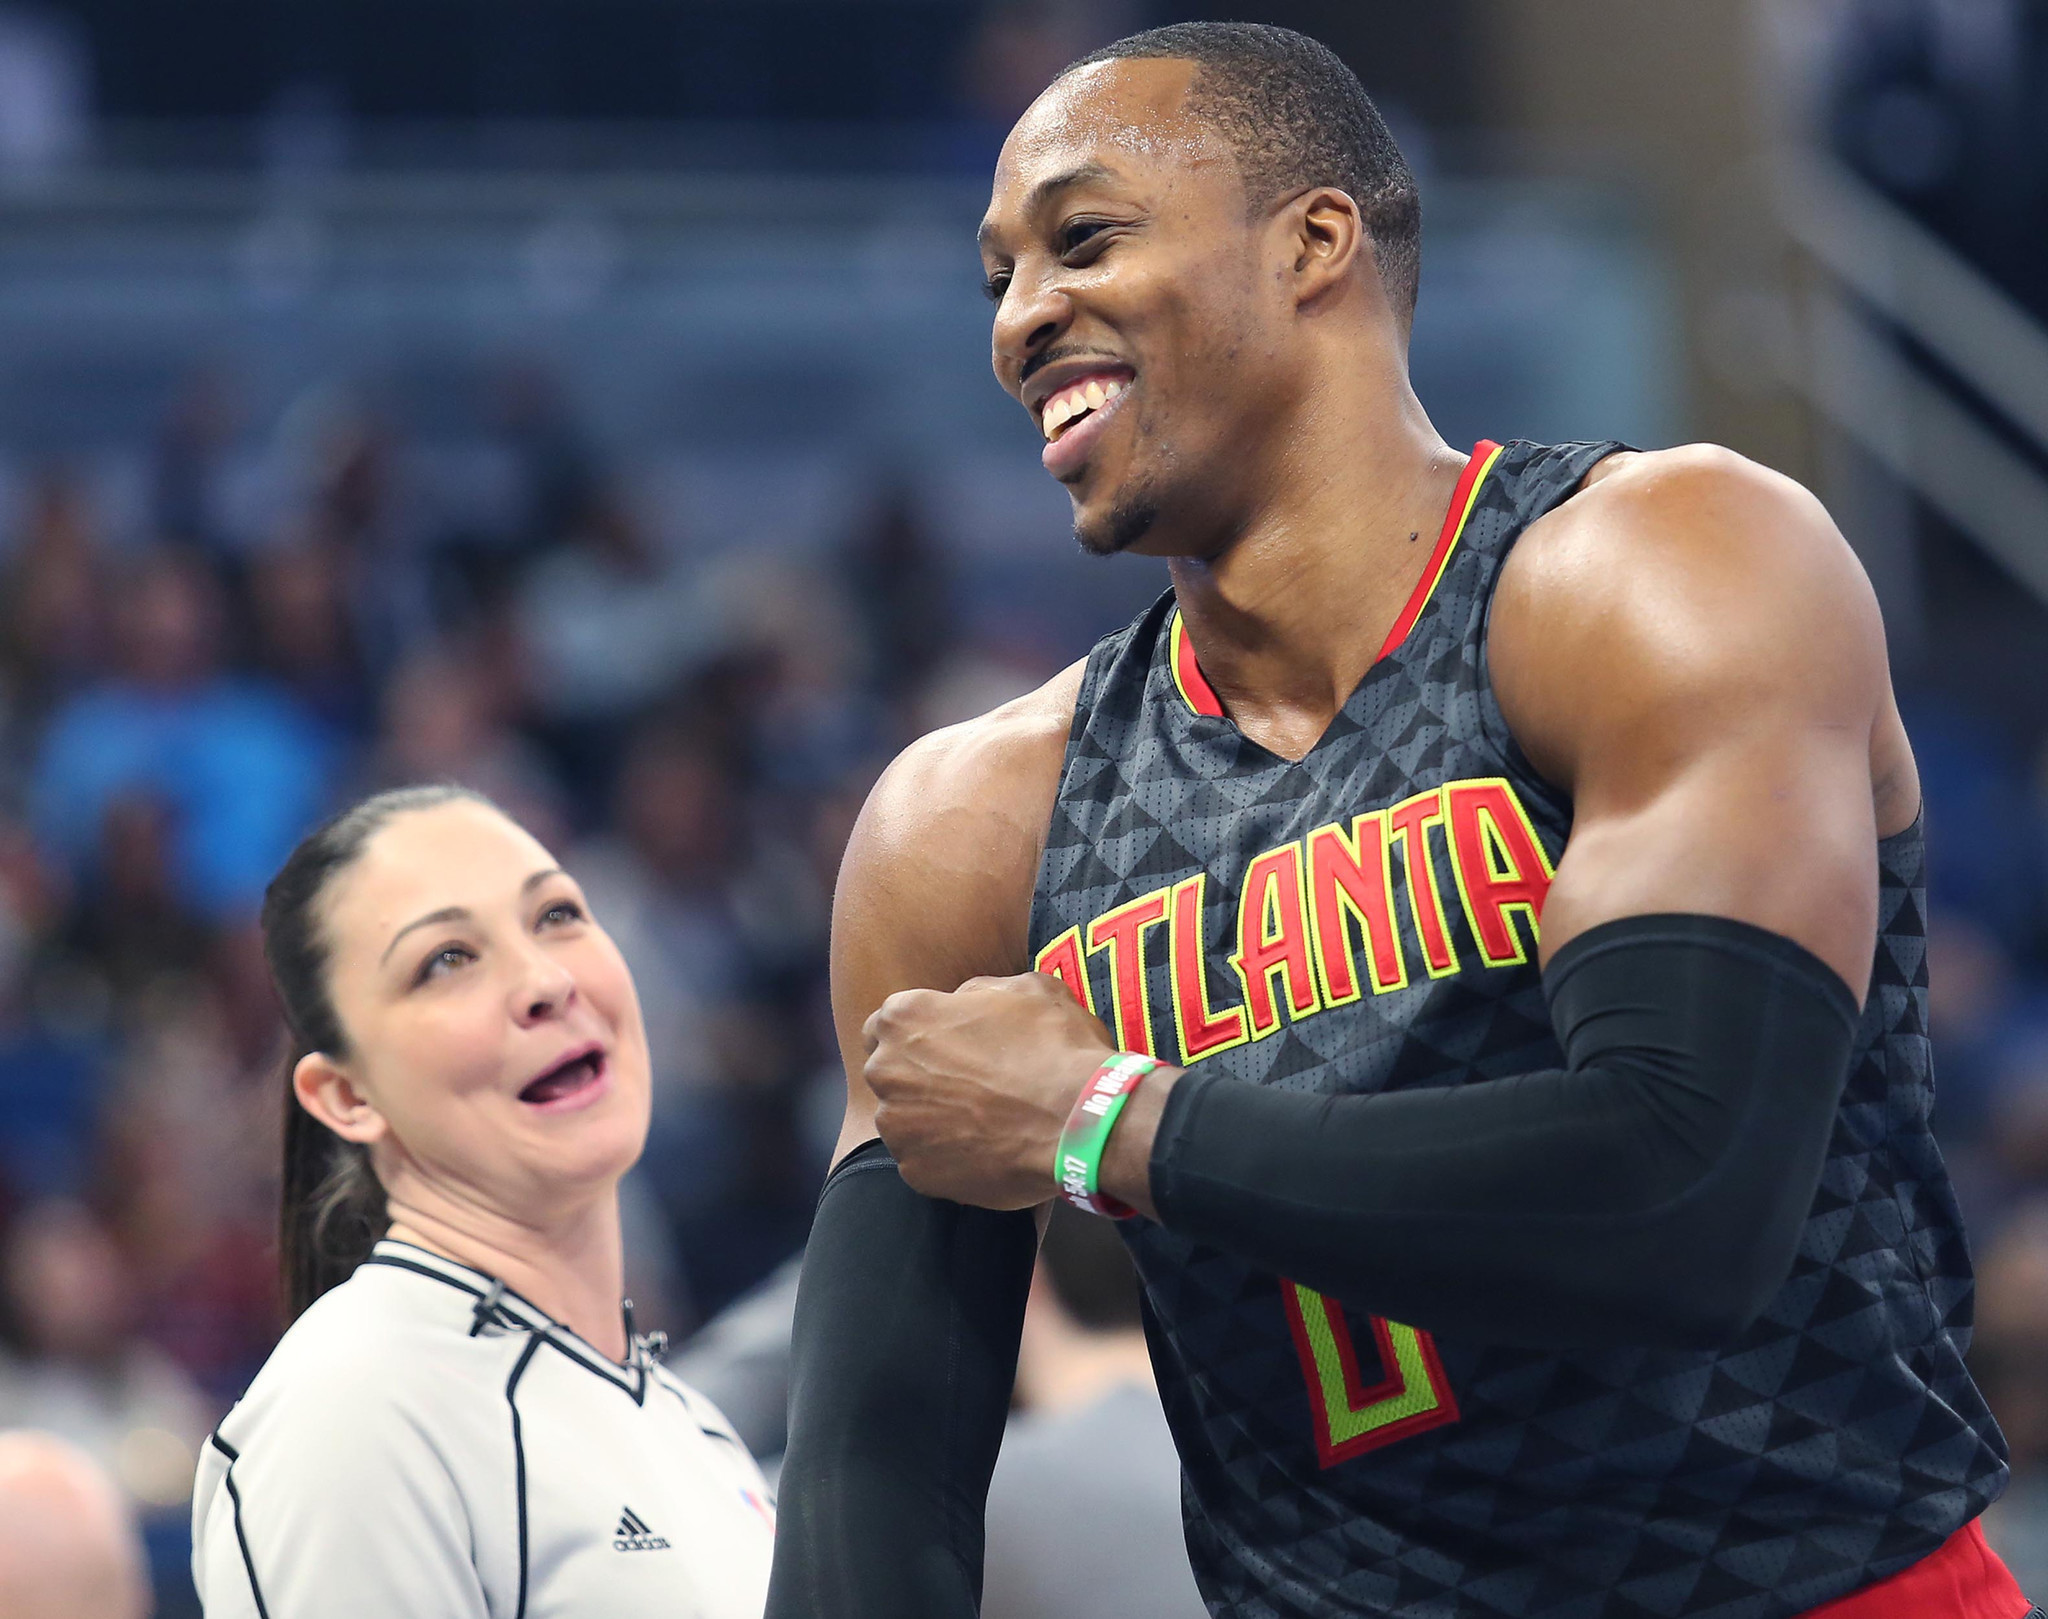 Former Orlando Magic superstar Dwight Howard is like an old